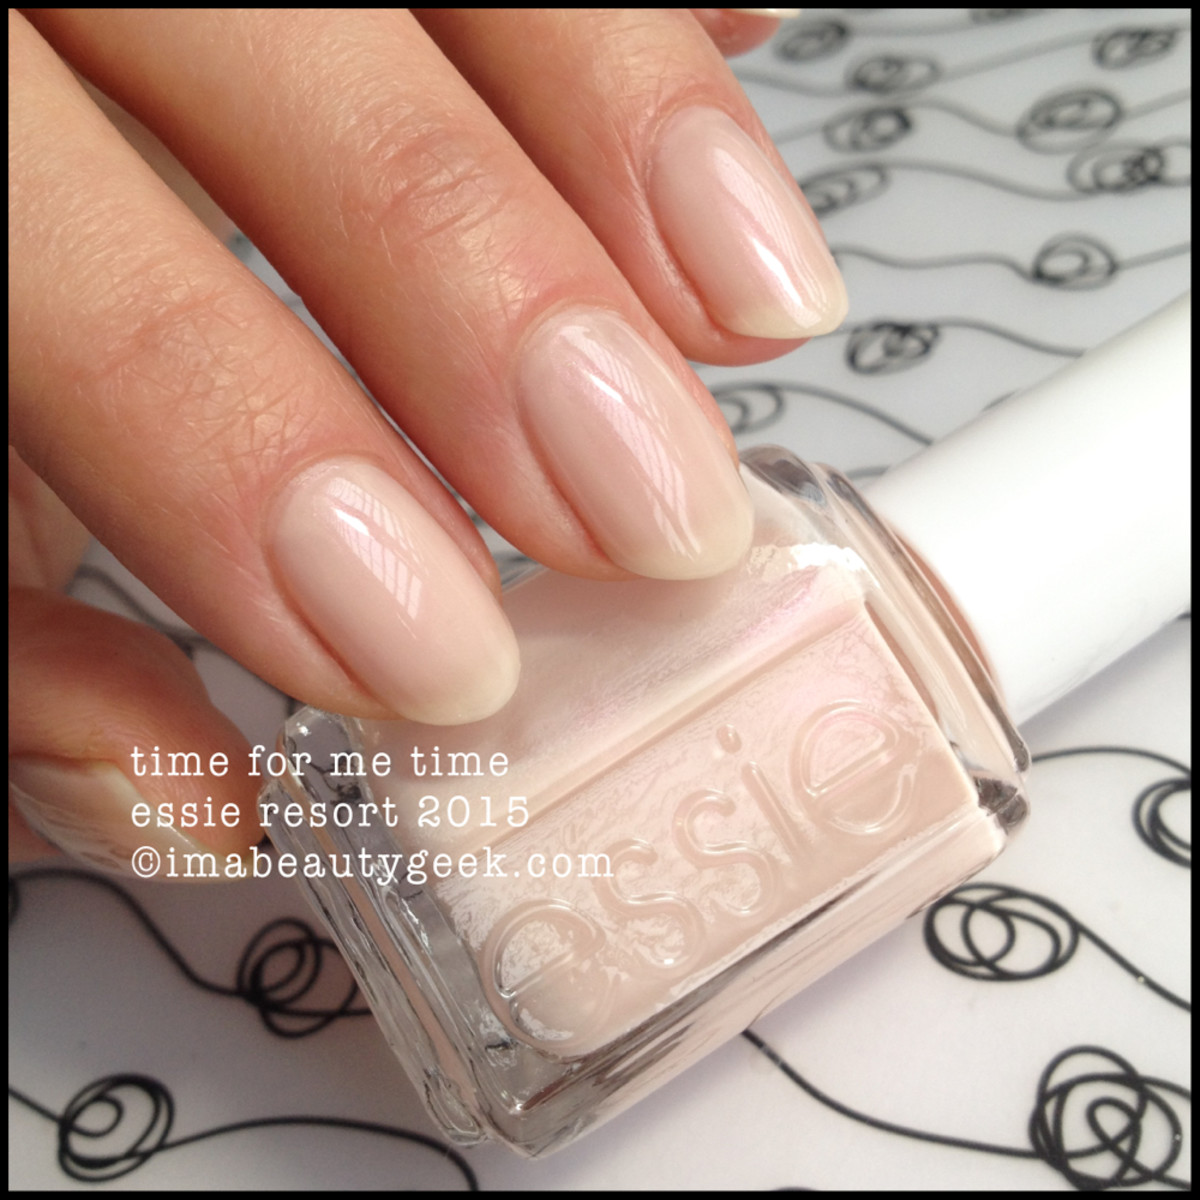 Essie resort 2015 Time For Me Time